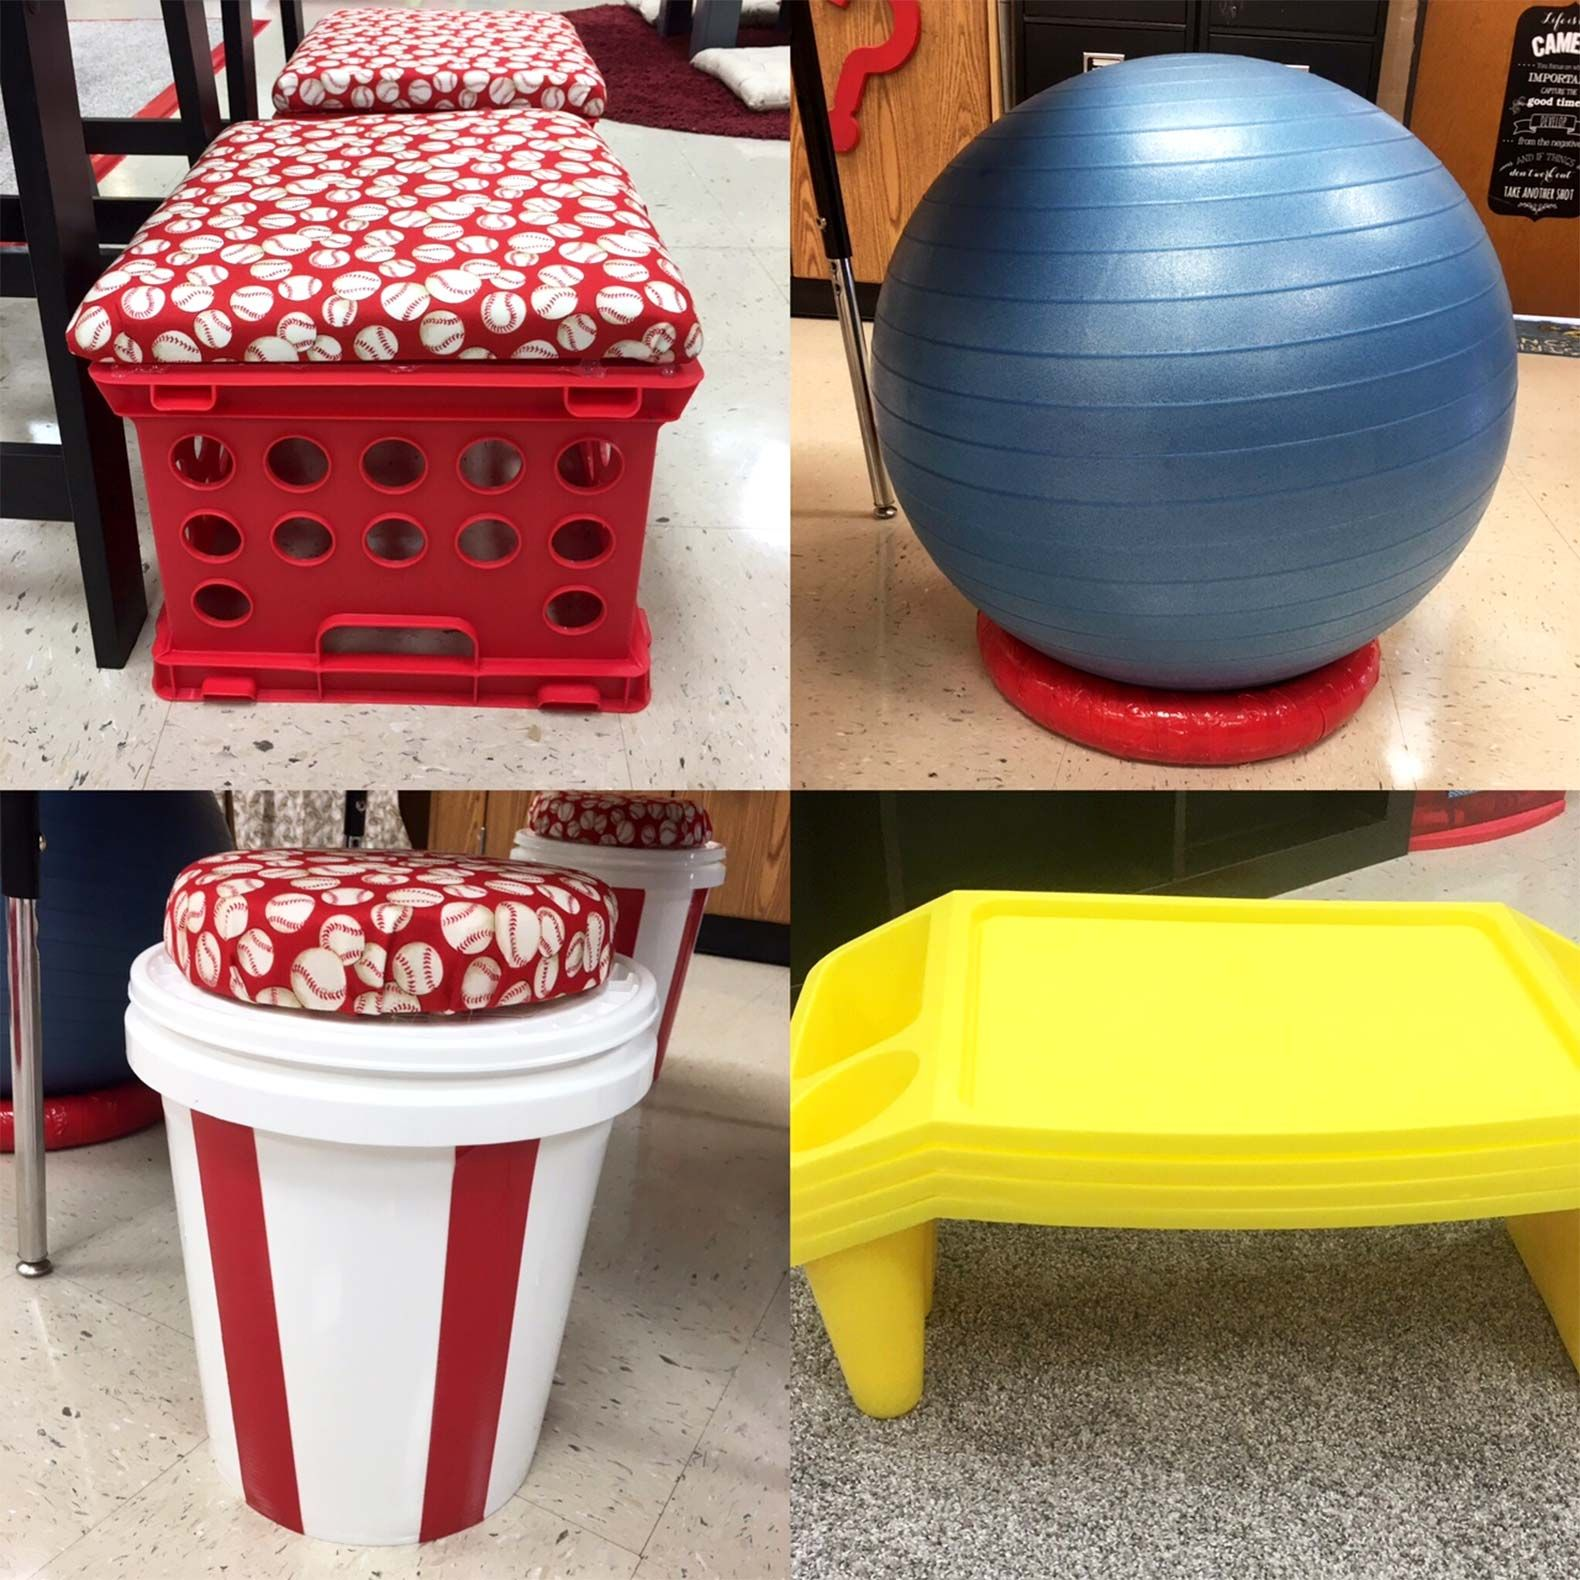 Amy Mileham added a variety of seating options to her classroom, including yoga balls, lap desks, and crate and bucket seats.